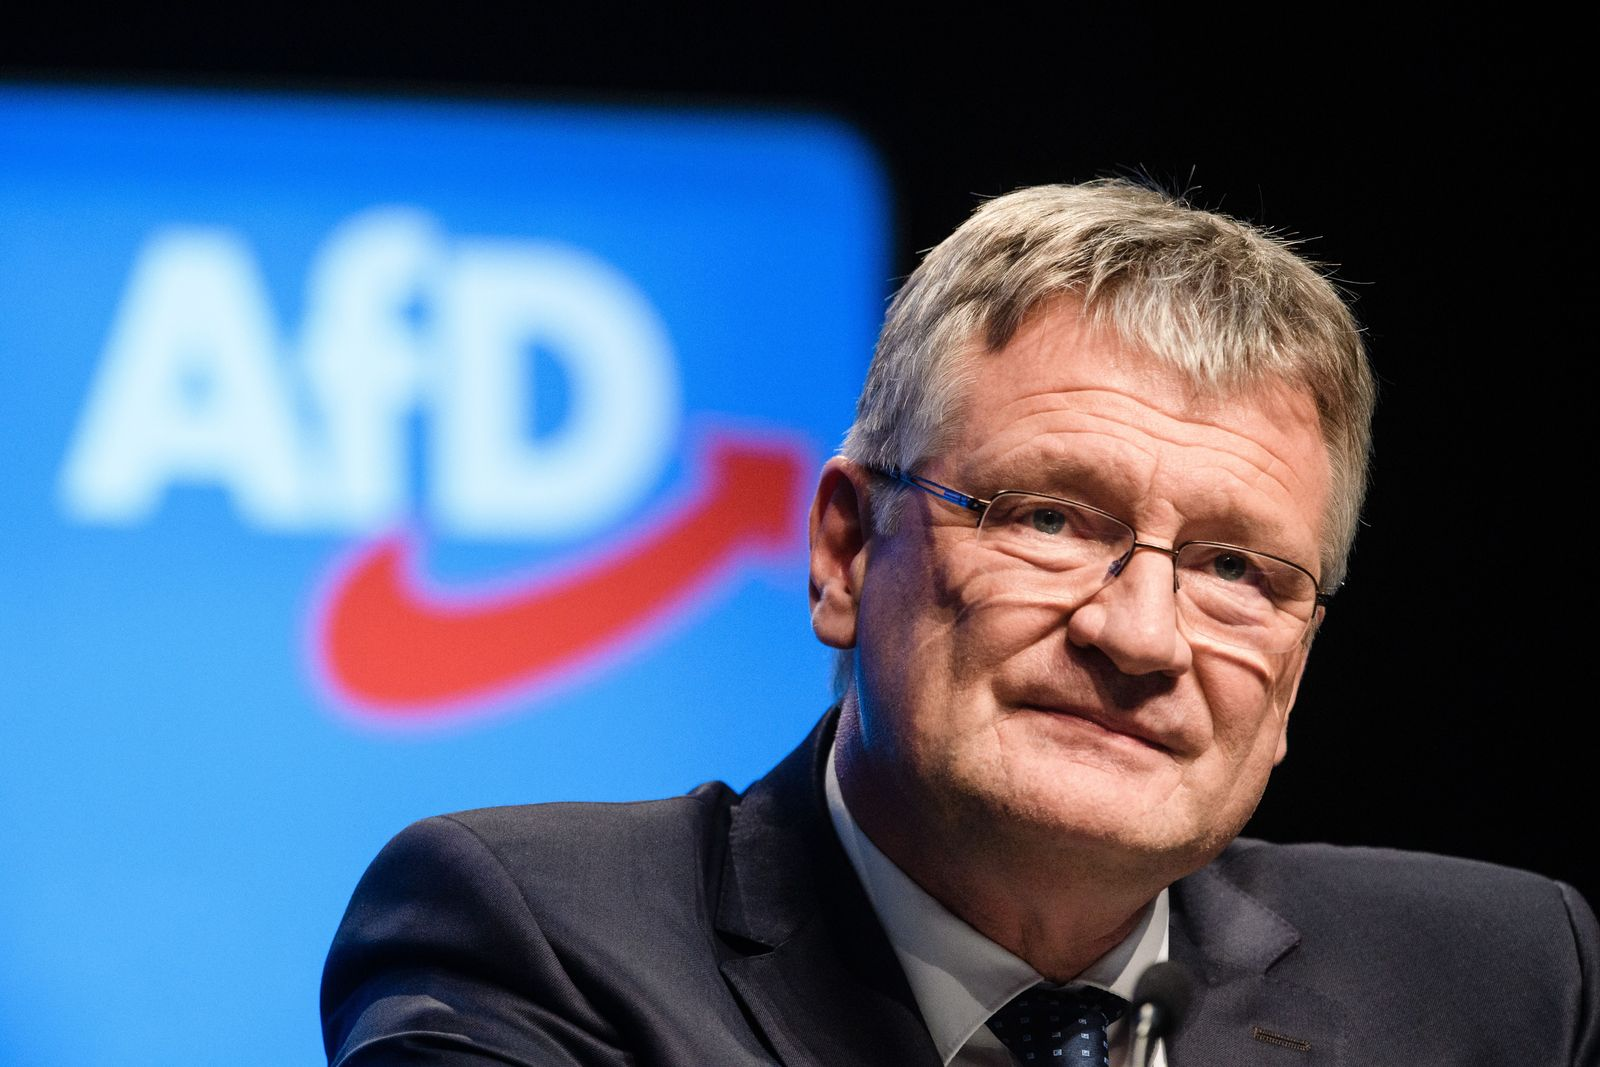 German AfD party convention in Brunswick, Germany - 30 Nov 2019